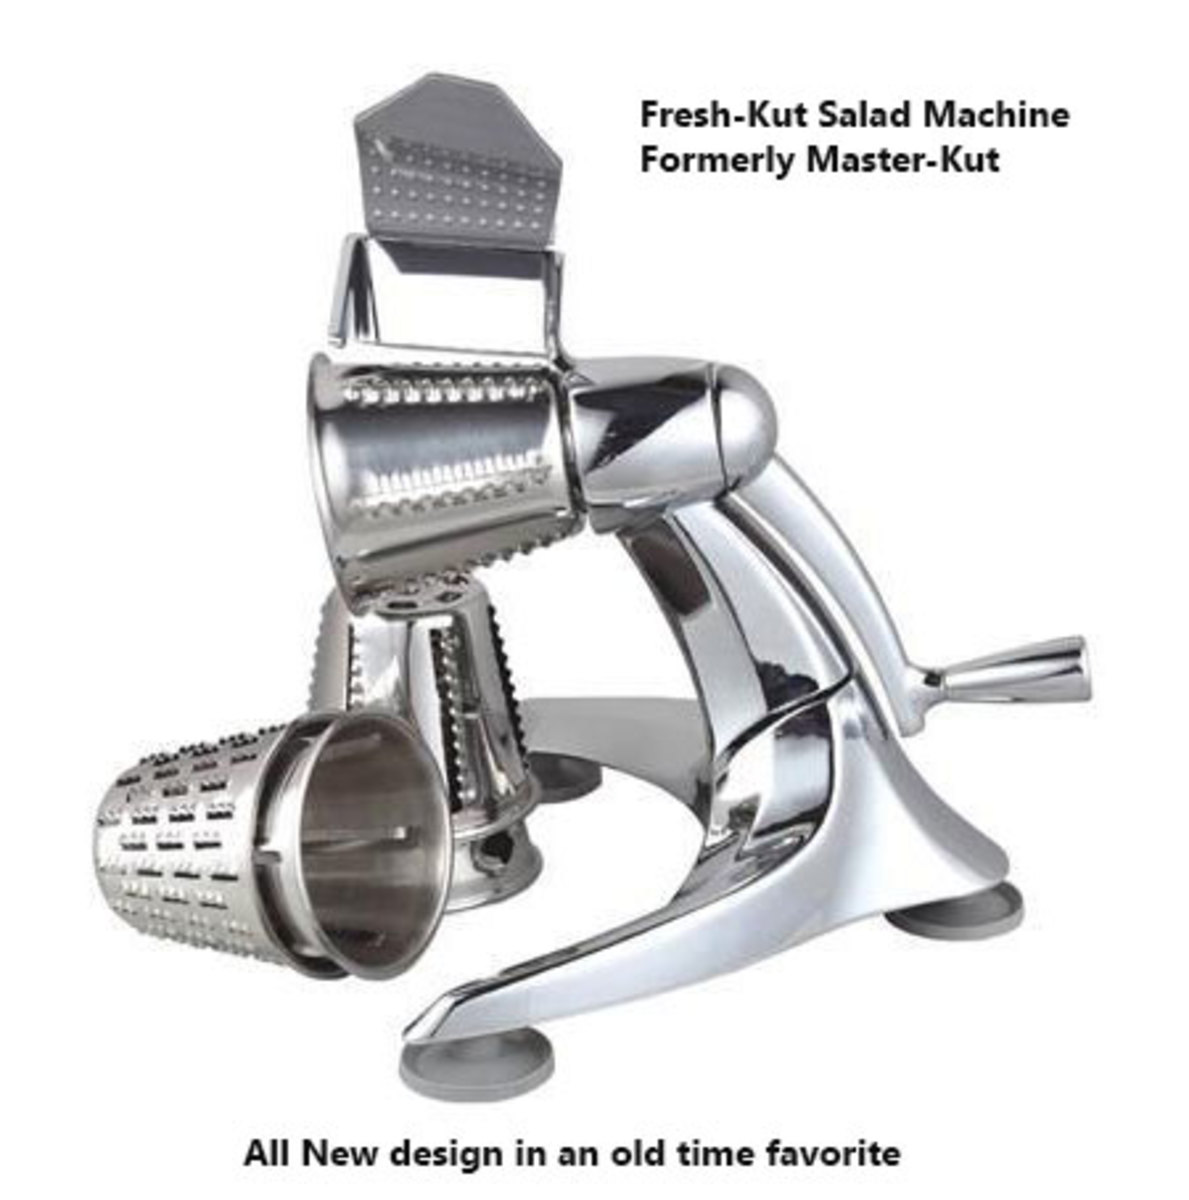 Old fashioned hand crank salad maker makes a large bowl of salad and slaw in short order.  They are easy to use and clean compared to an electric model.